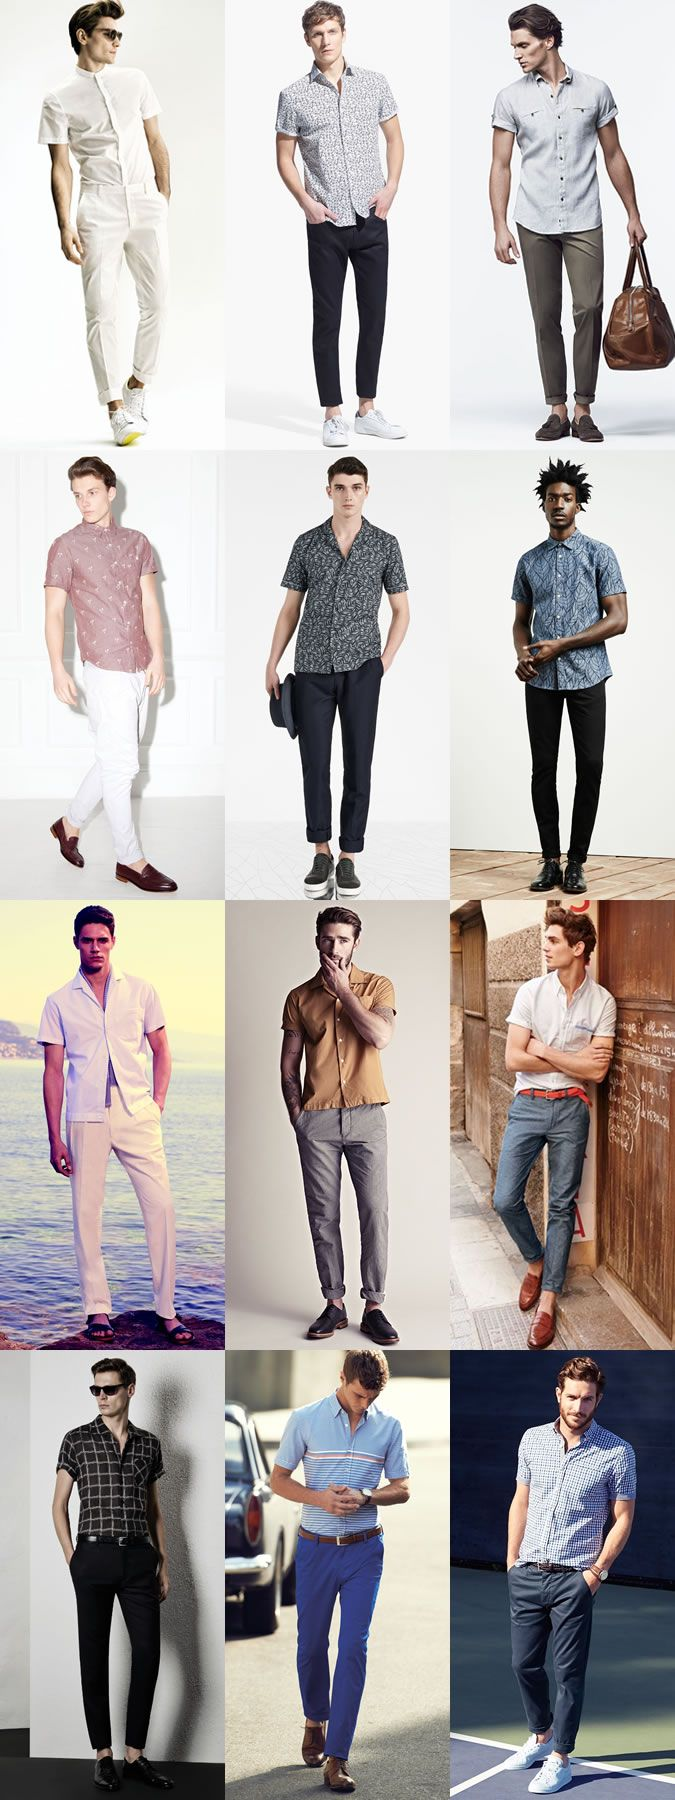 Men's Go-To Smart-Casual Summer Outfit Combinations: Short-Sleeved Shirt And Trousers Combination Inspiration Lookbook